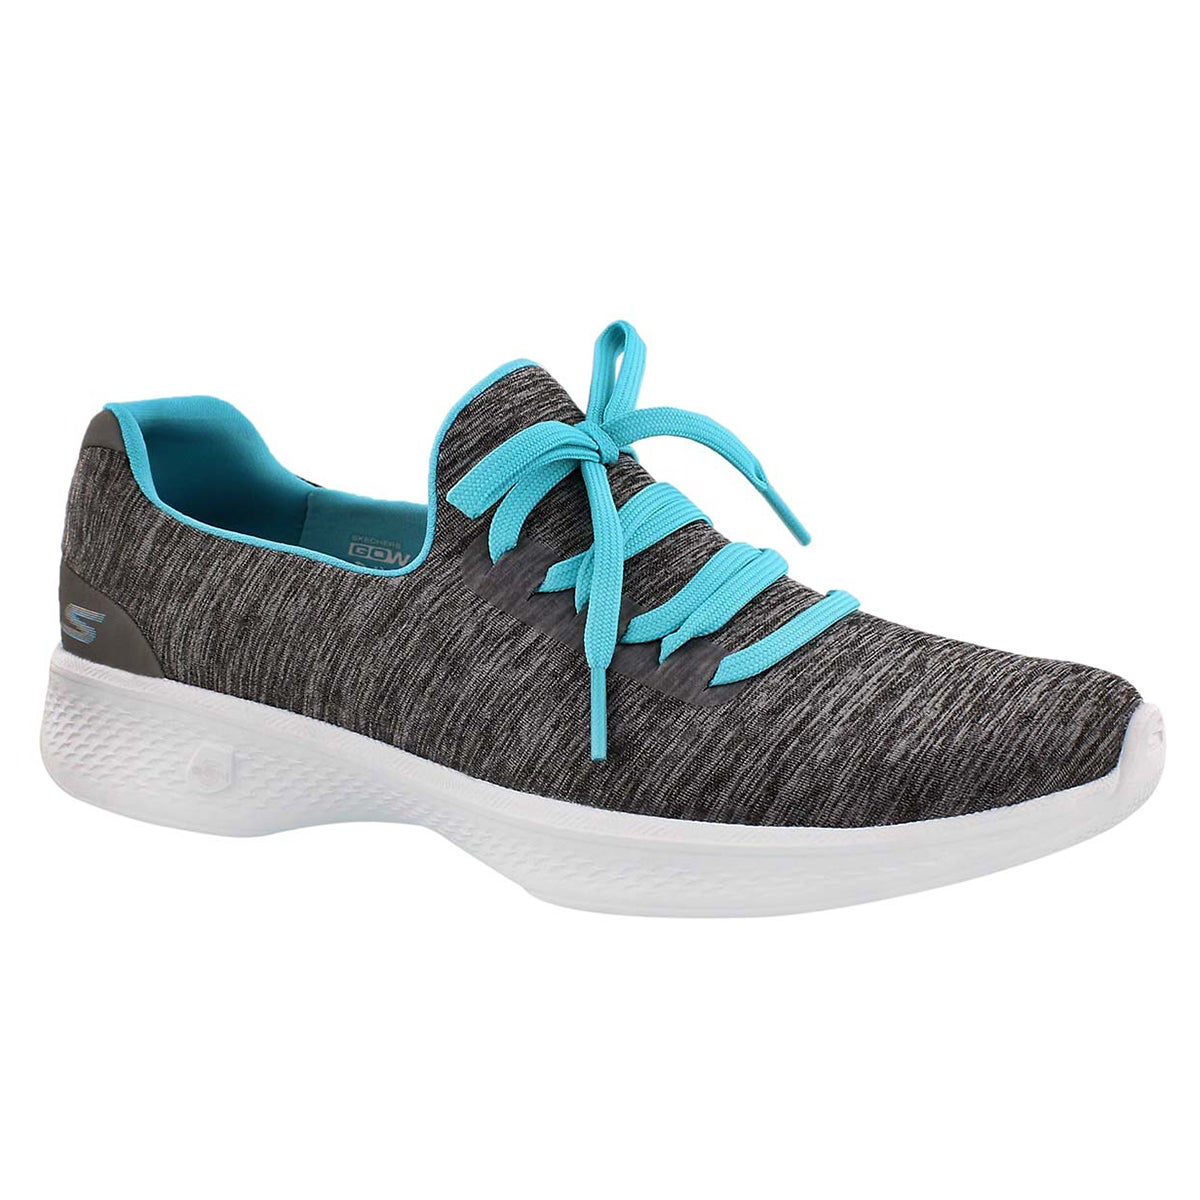 skechers lace up sneakers Sale,up to 71% Discounts